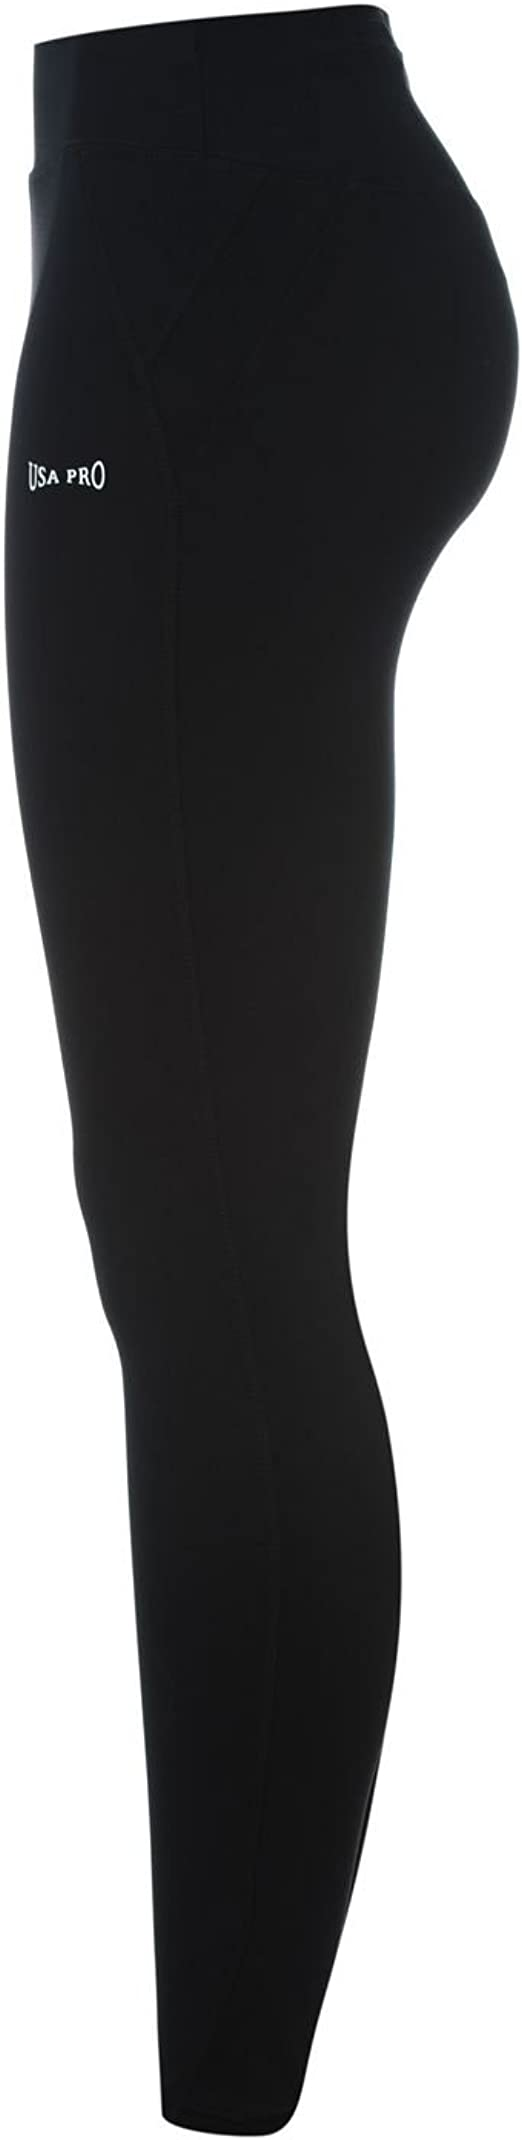 USA Pro Womens High Waisted Tights Performance Pants Trousers Bottoms